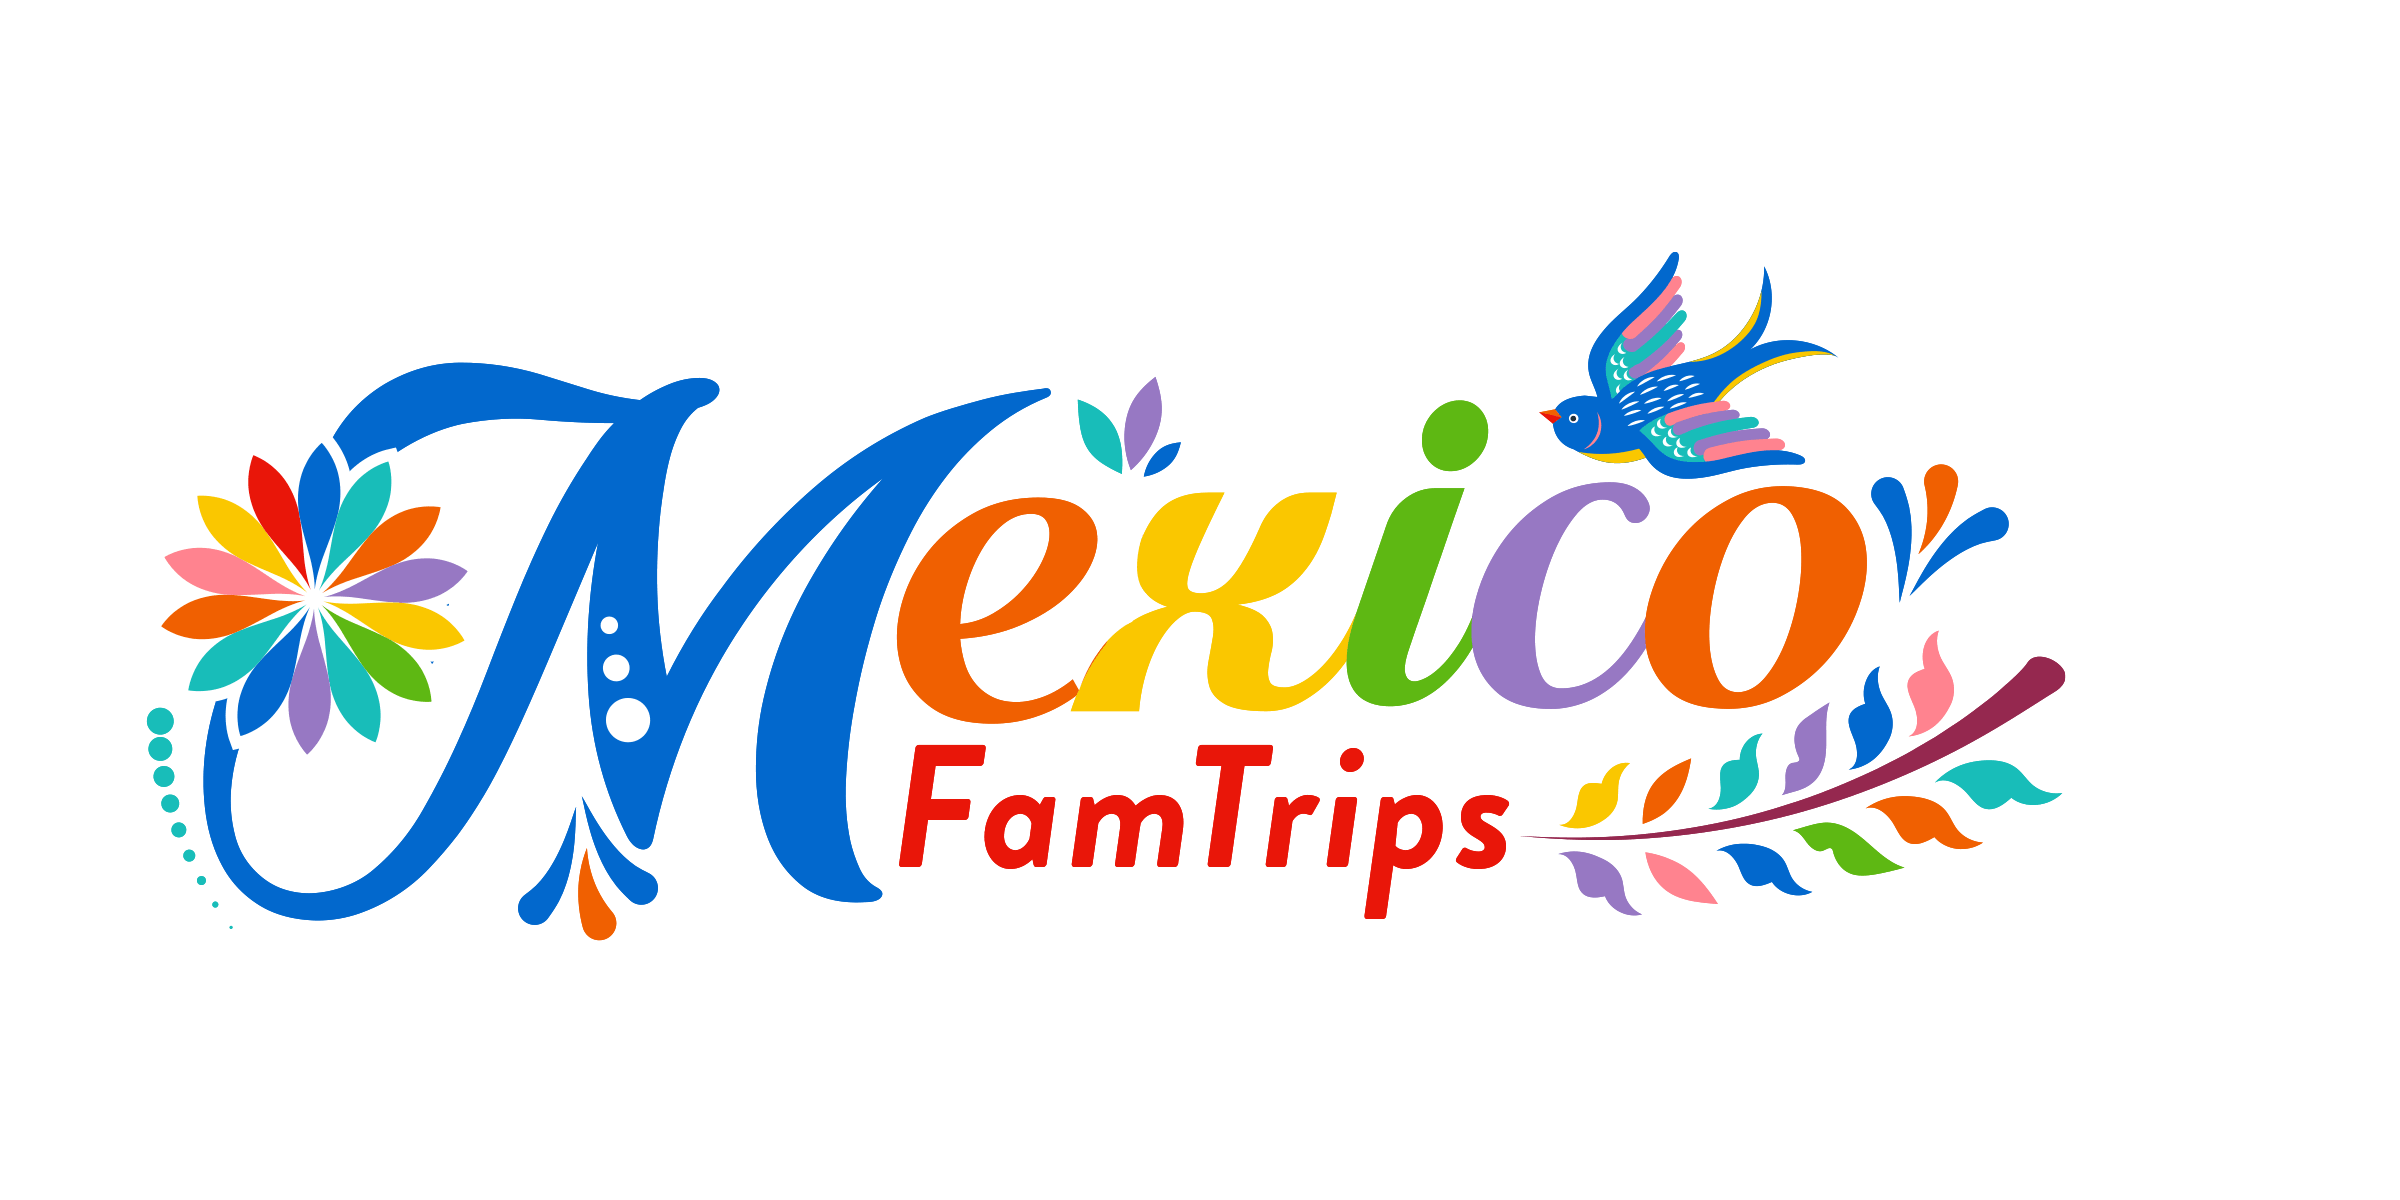 Mexico FamTrips